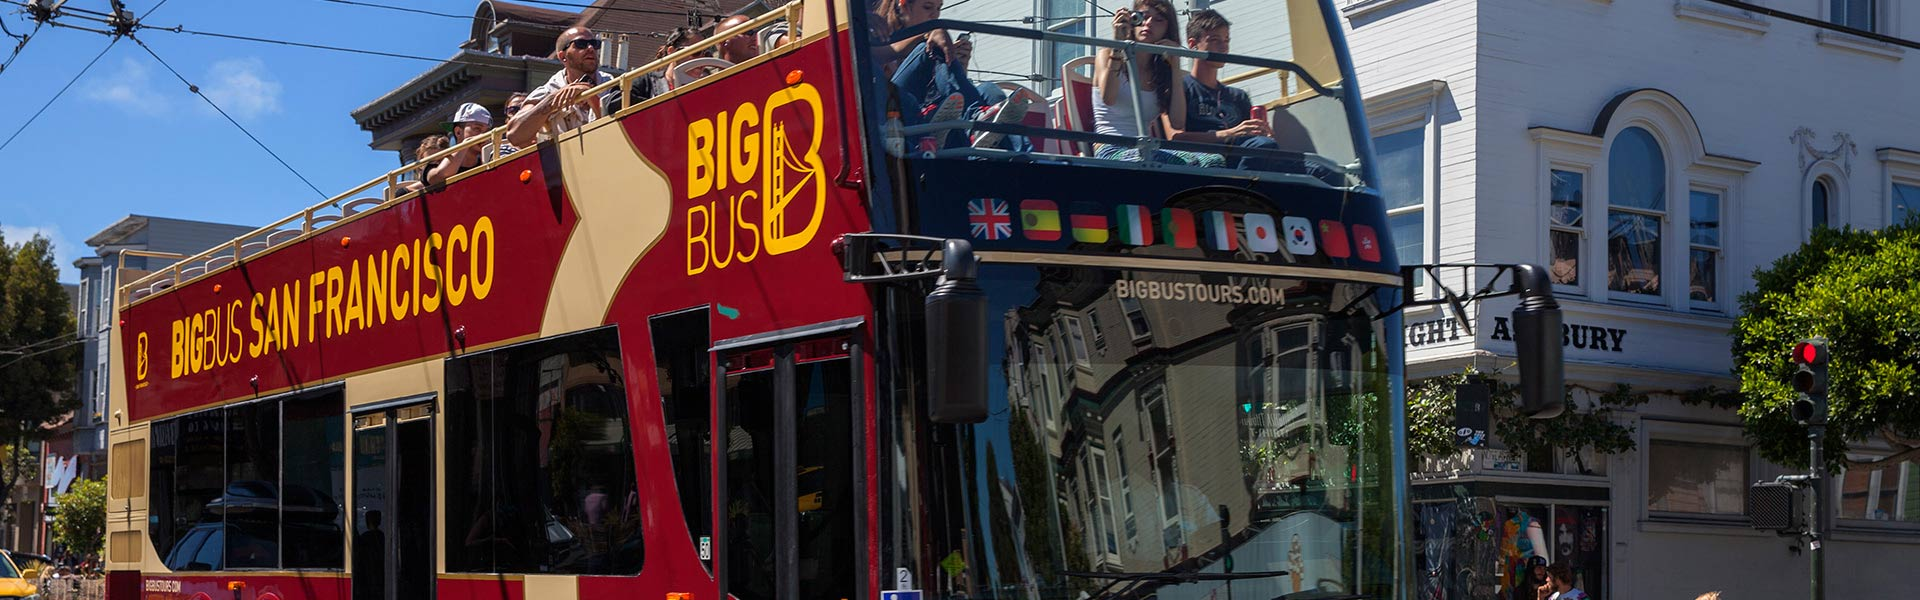 Big Bus Open-Top-Sightseeing-Tour in San Francisco